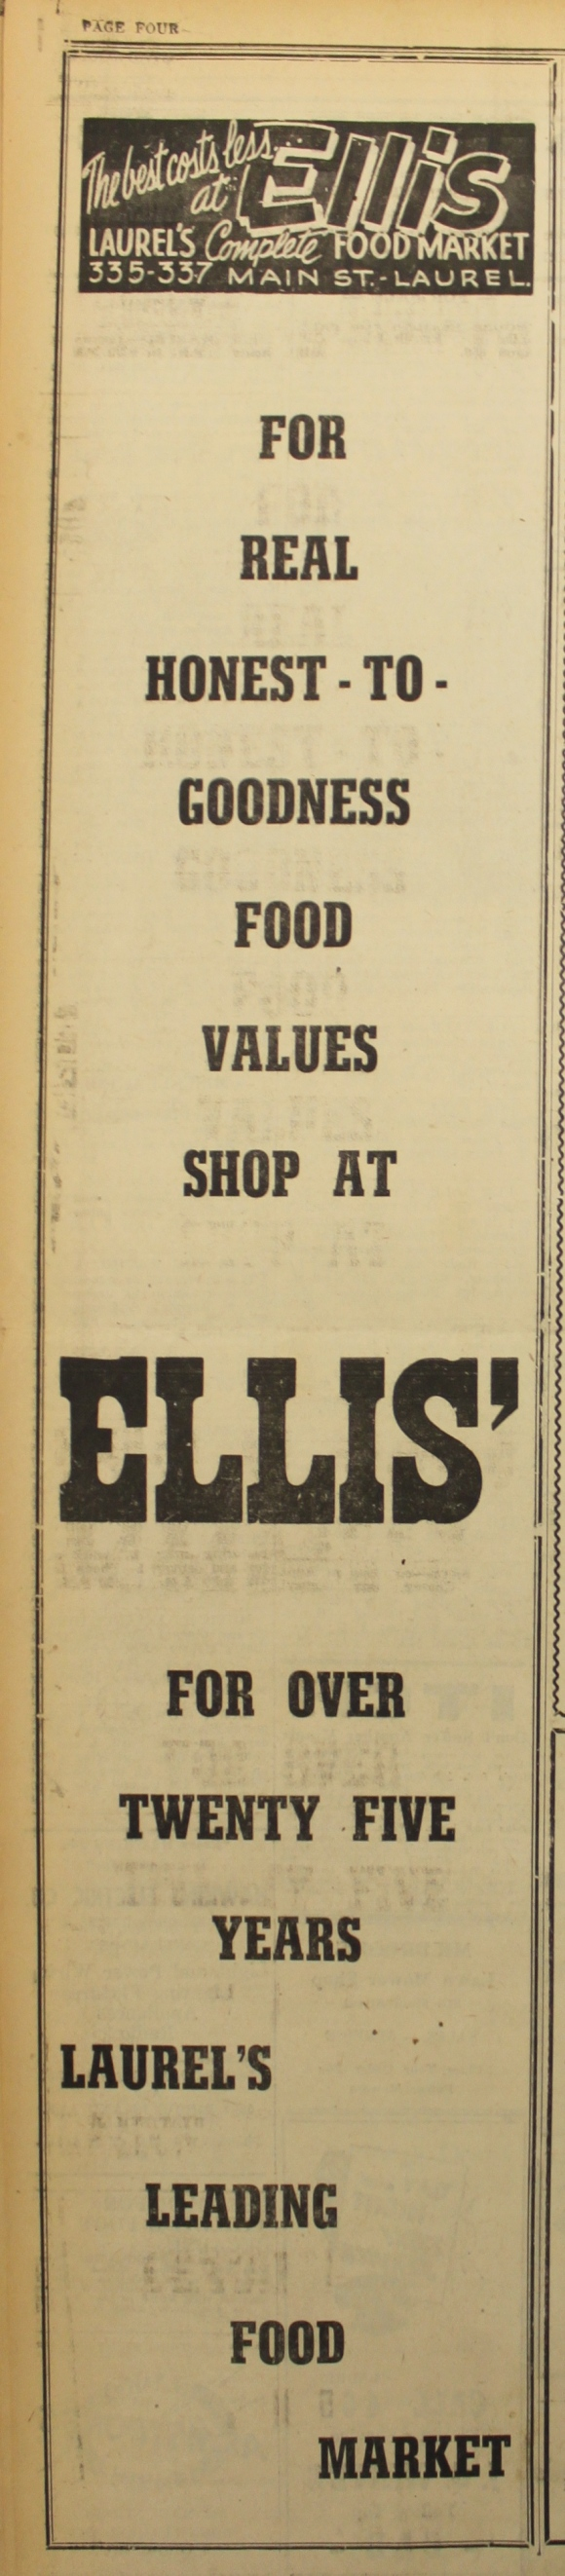 Laurel News Leader ad, 1948